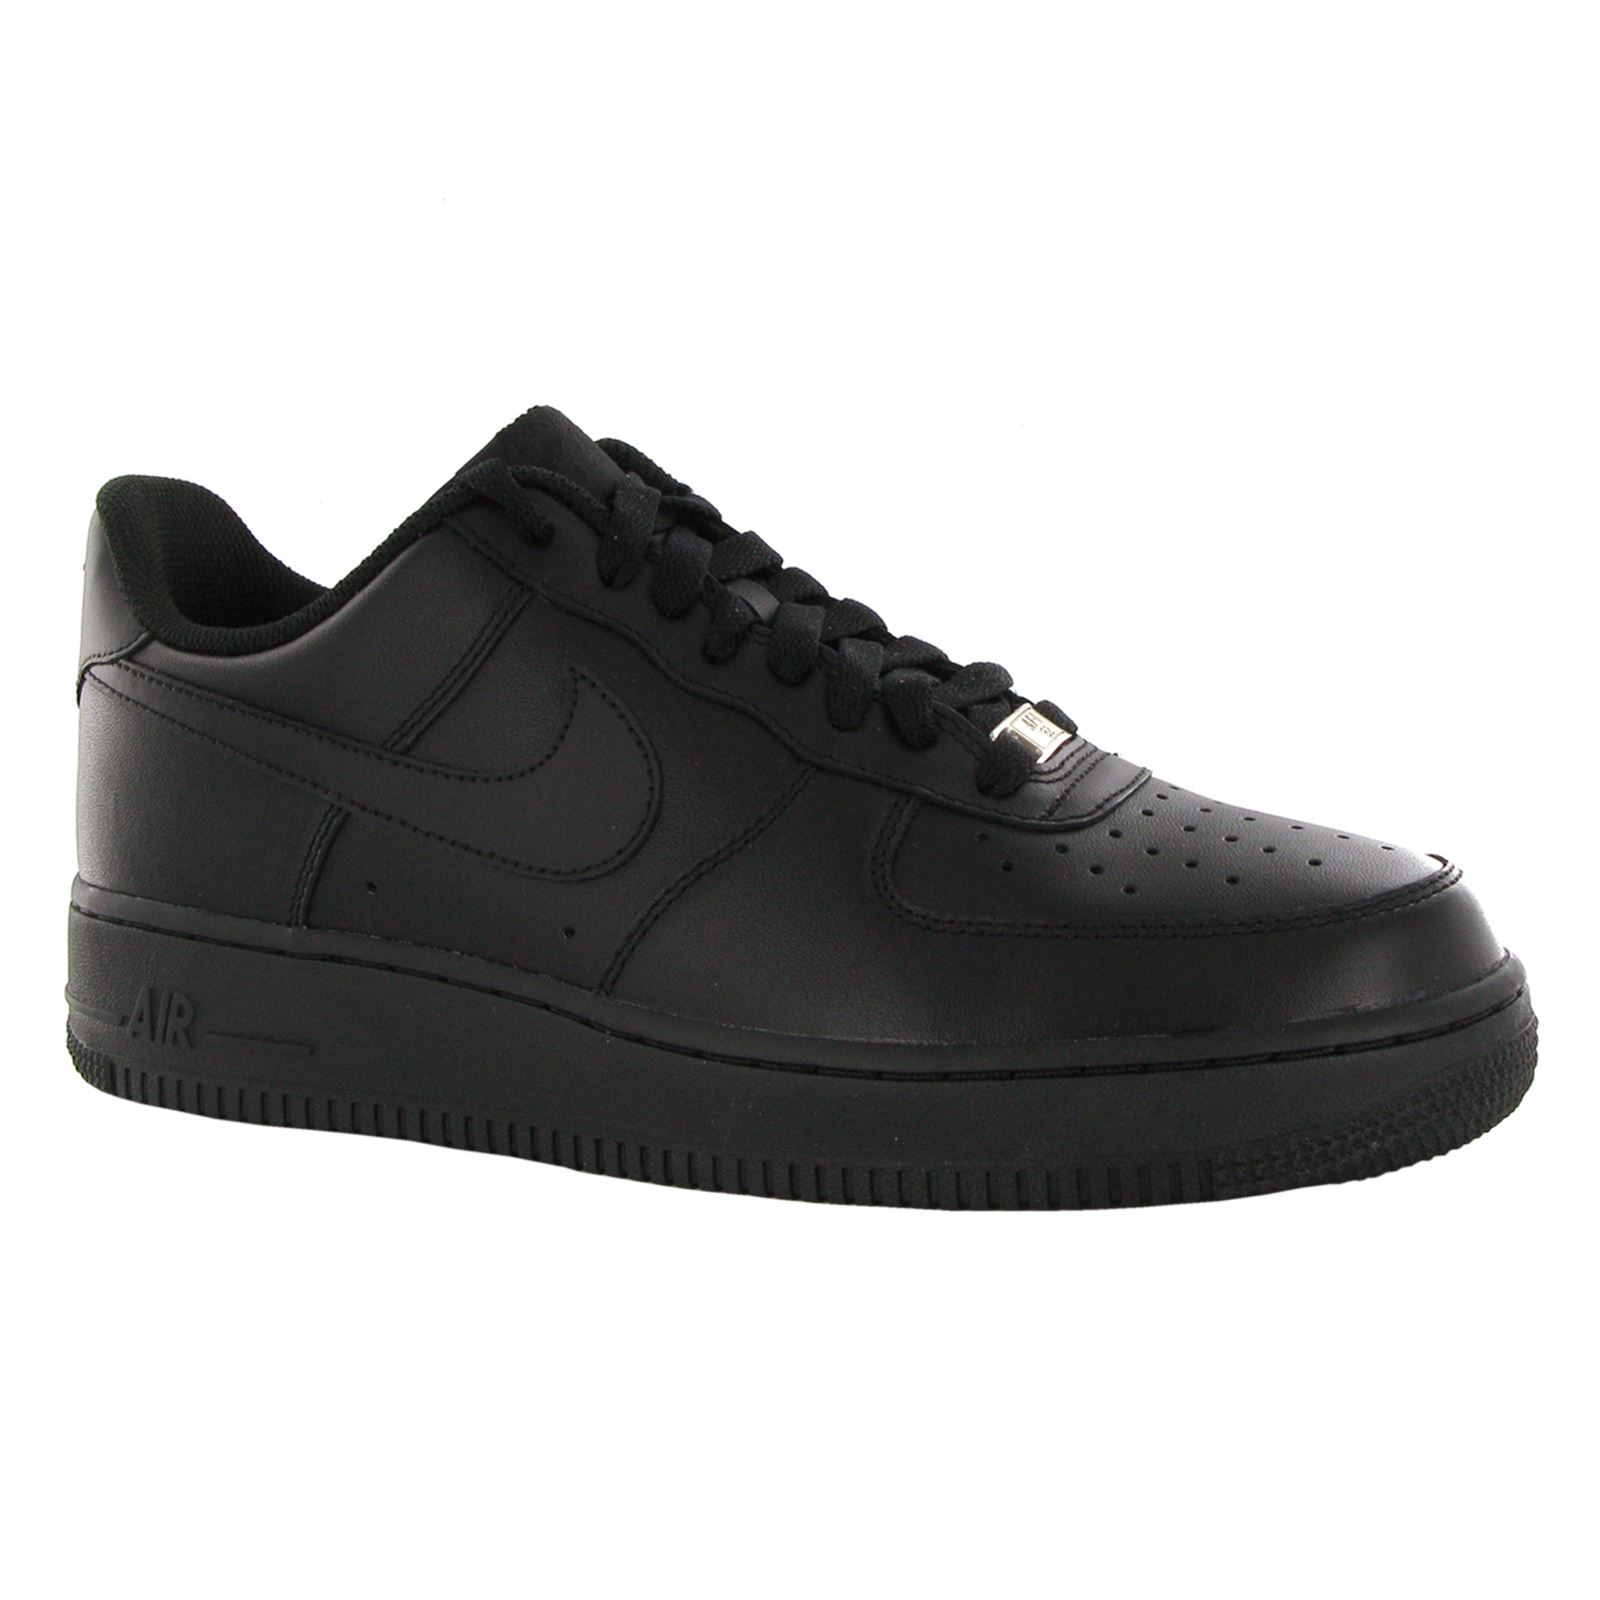 a7520e058fc6e7 Nike Air Force 1 GS Shoes Black Sneaker 314192-009 Unisex Low Dunk ...